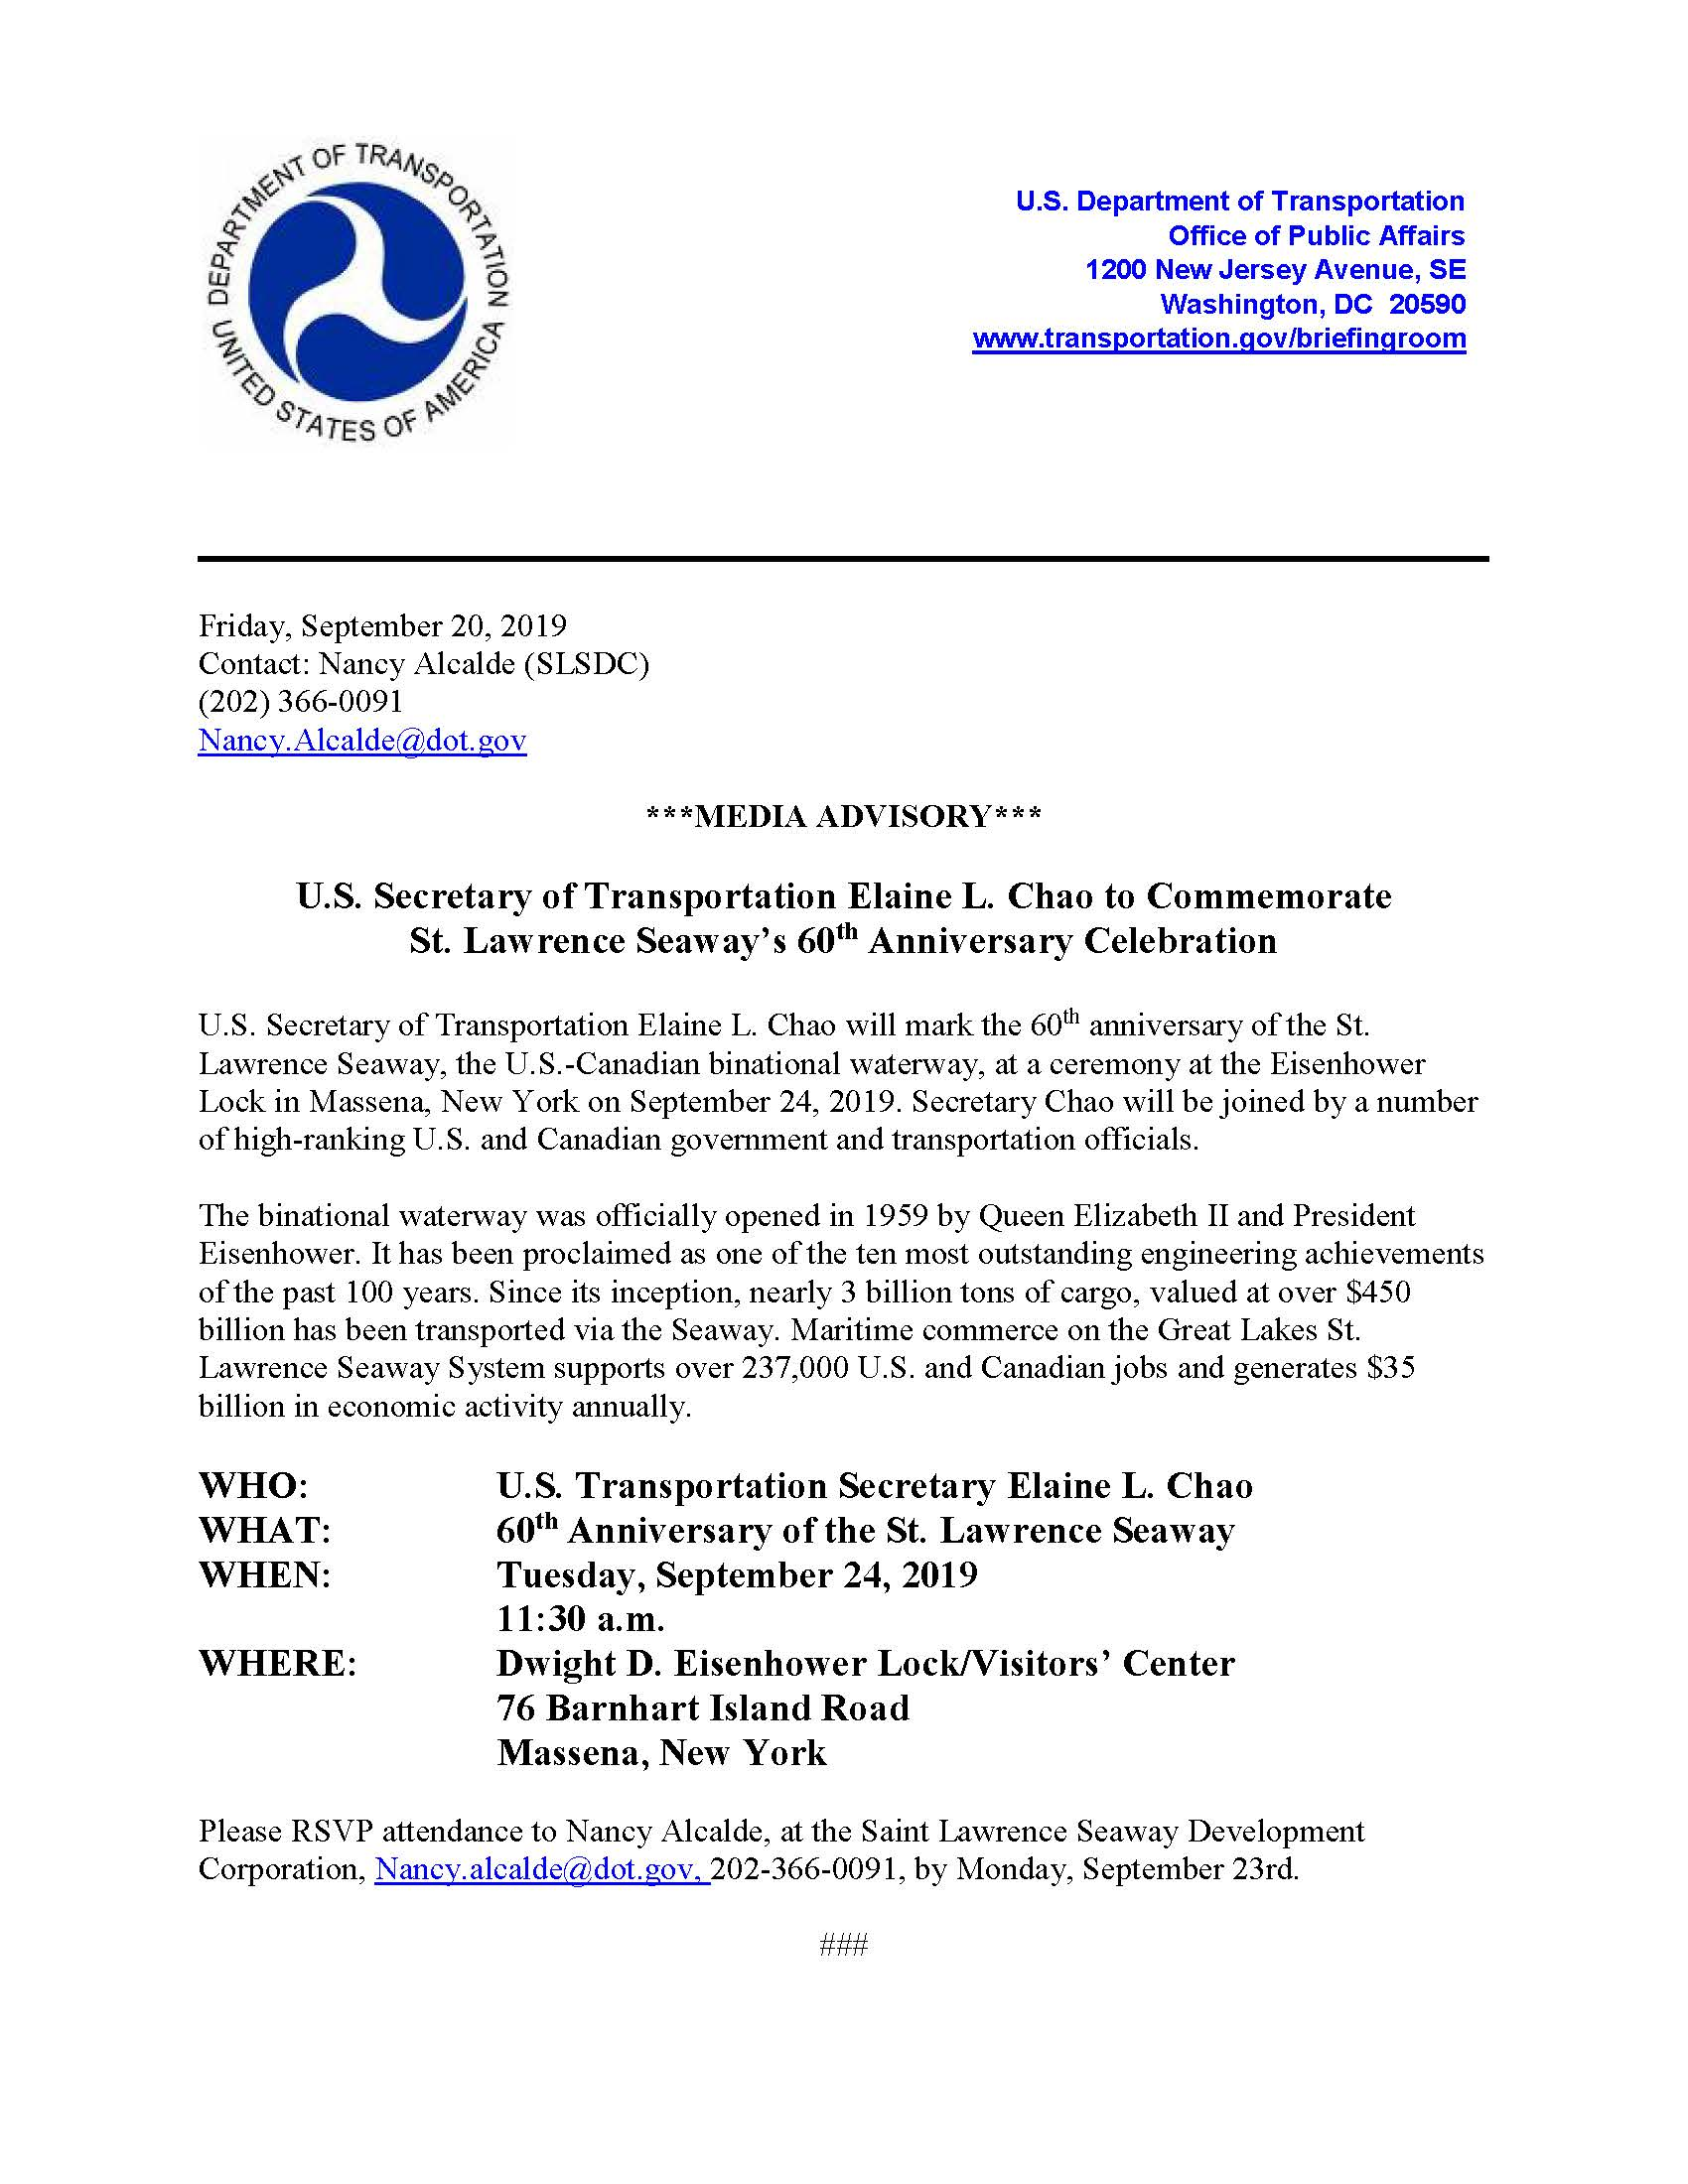 U.S. Secretary of Transportation Elaine L. Chao to Commemorate St. Lawrence Seaway's 60th Anniversary Celebration